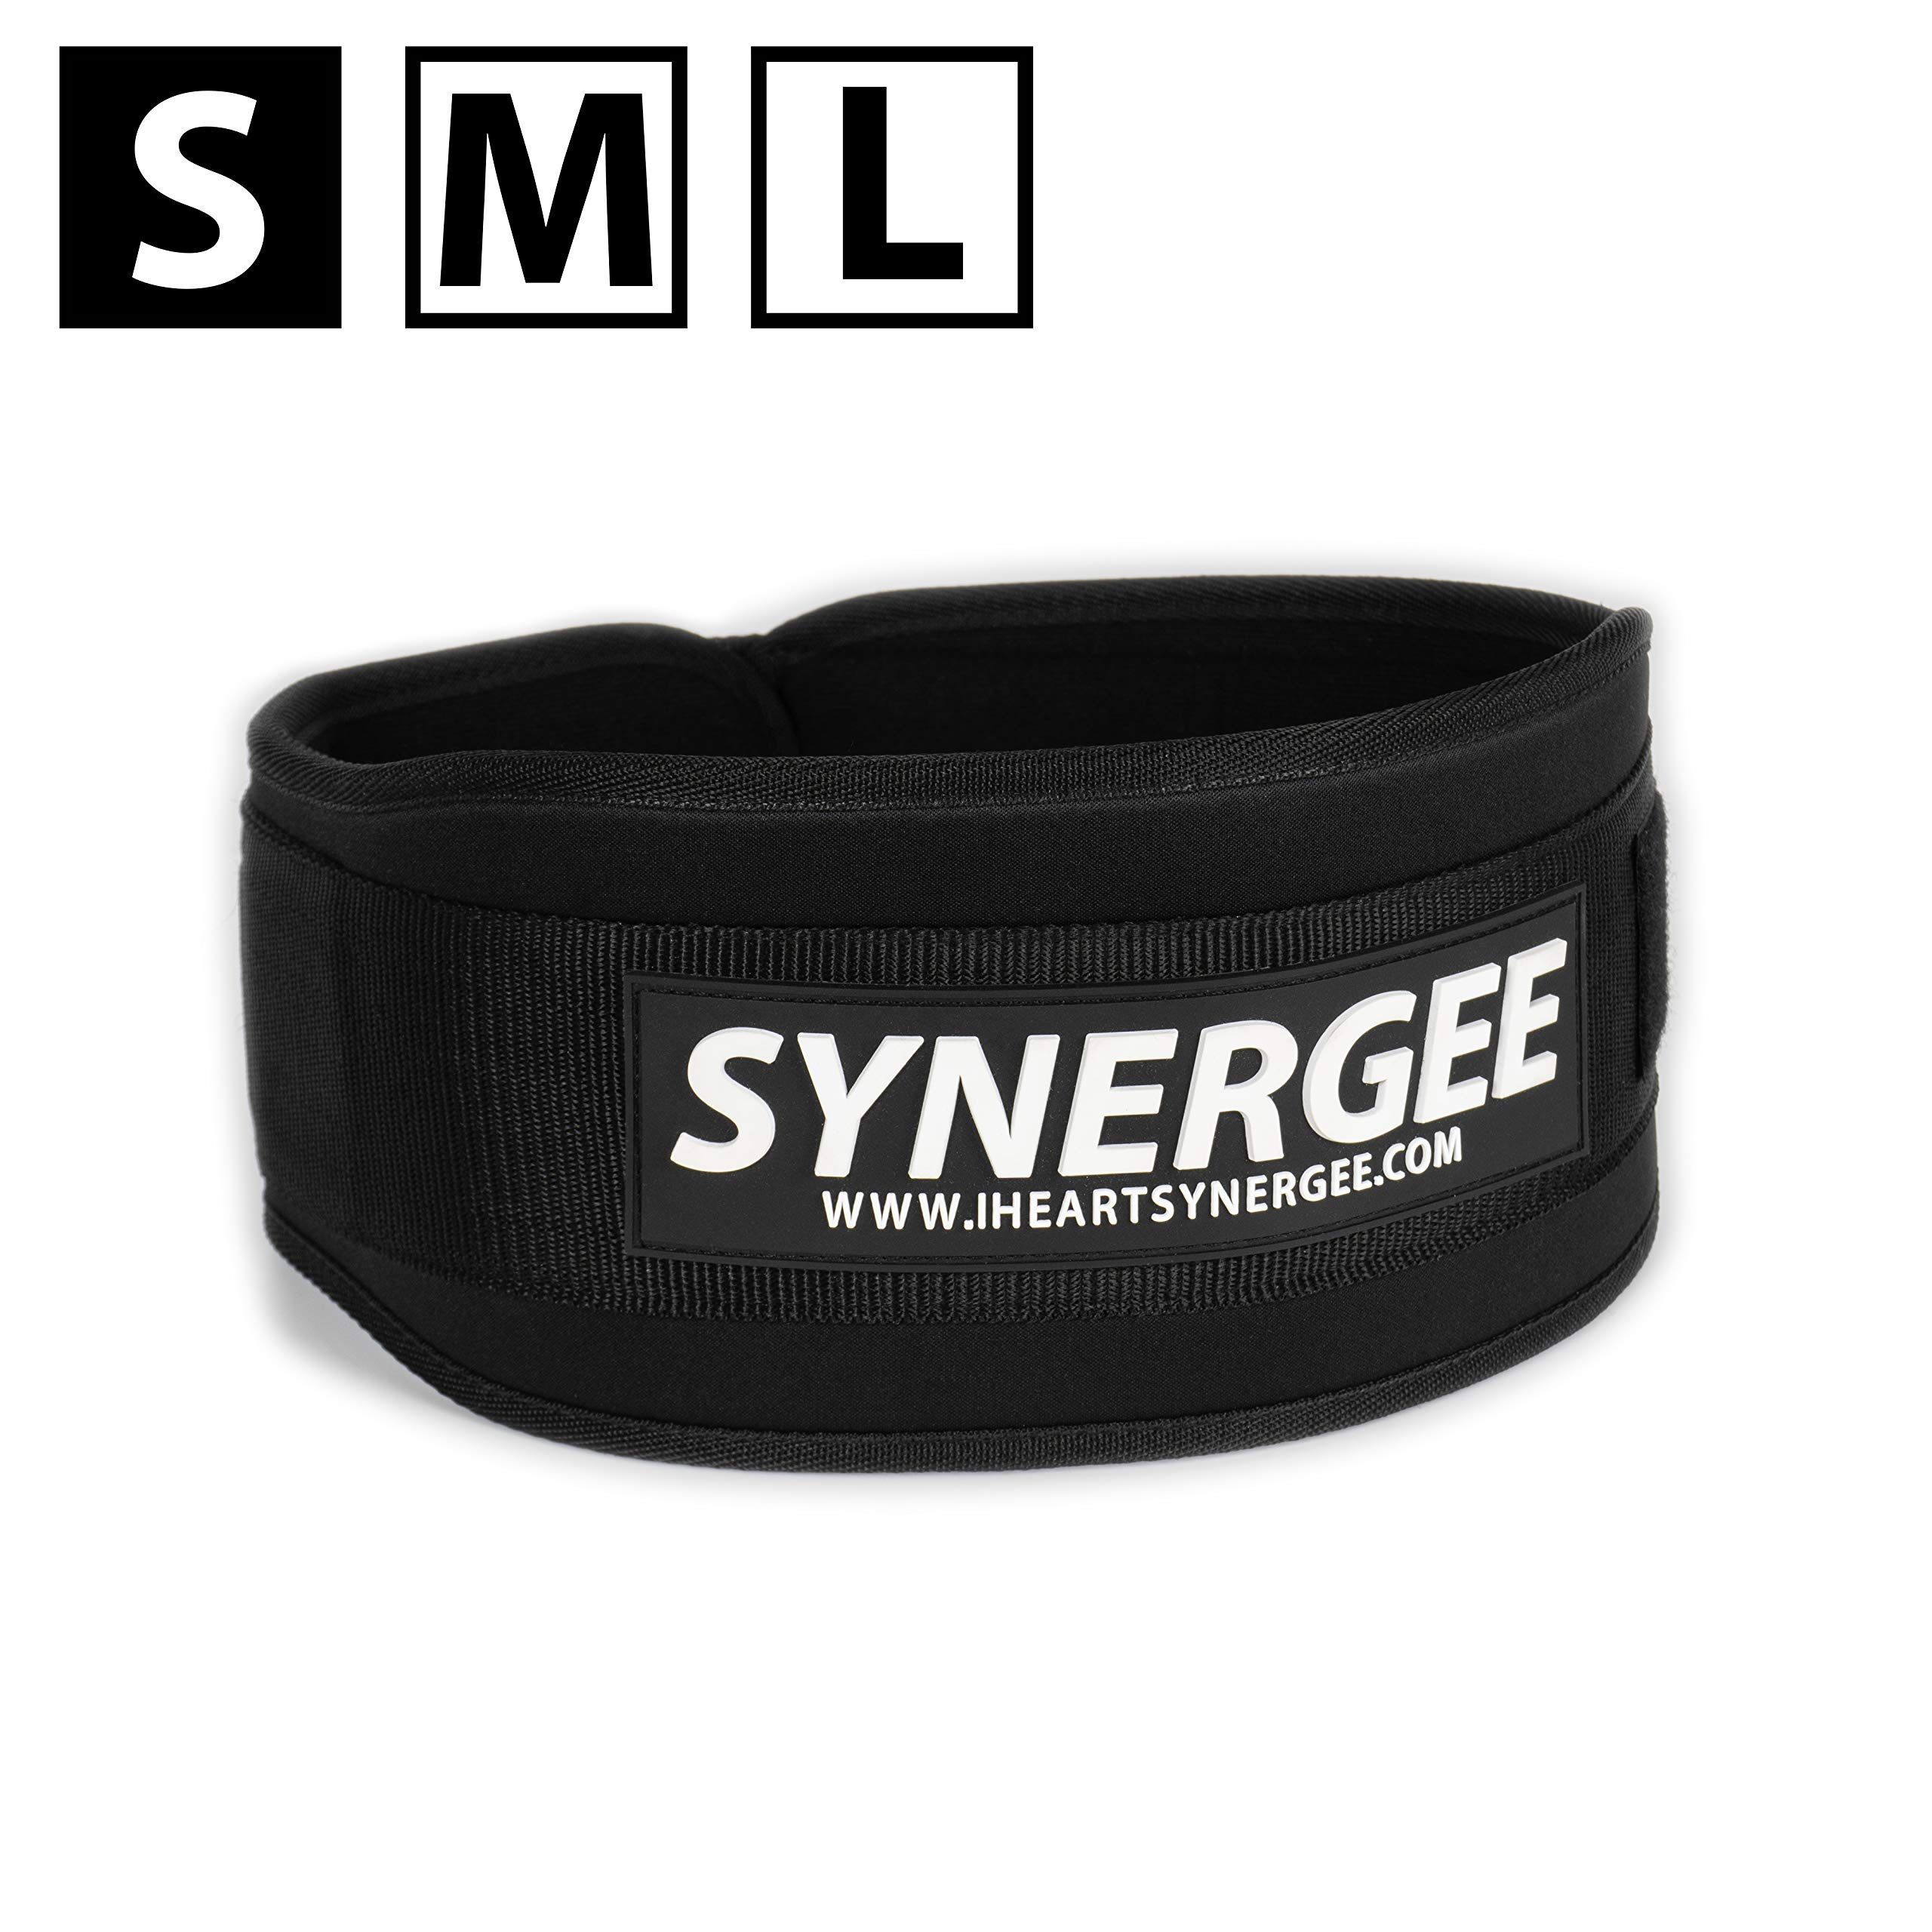 Synergee Weightlifting Belt, Olympic Lifting, Dynamic Workouts, Weight Belt for Men and Women, 5 inch, Back Support for Lifting - Small